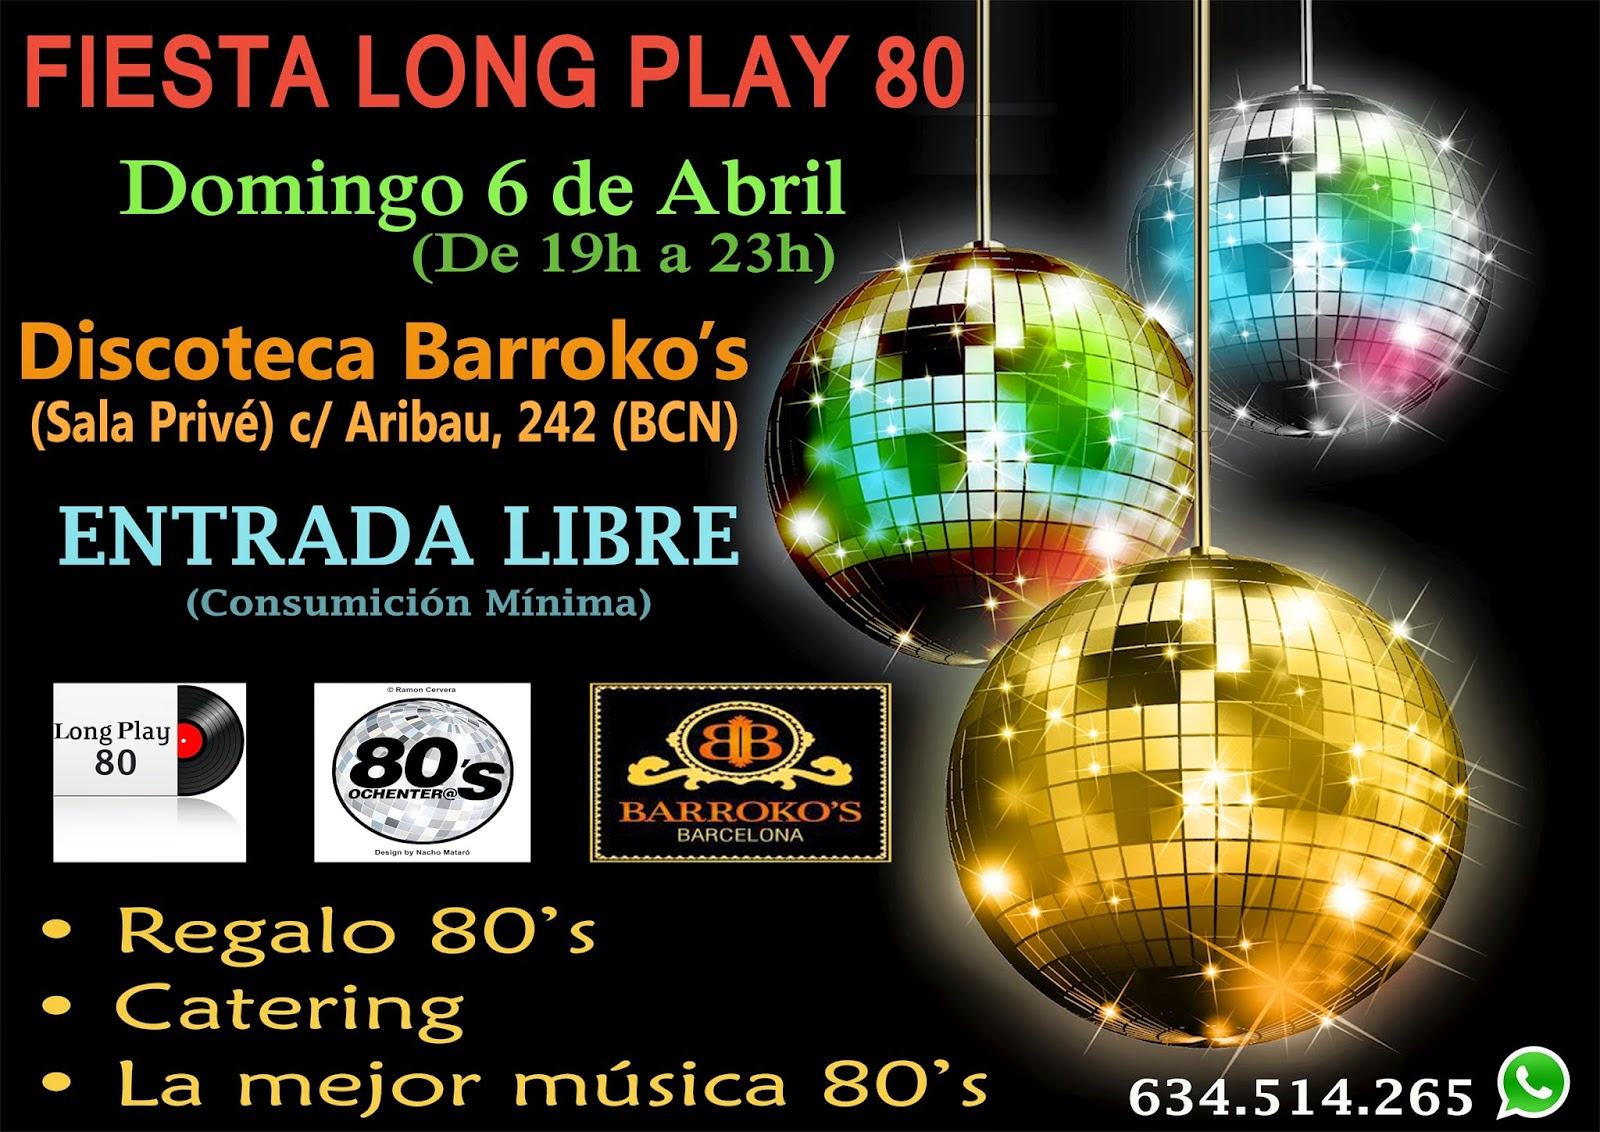 Flyer Fiesta Long Play 80 06/04/2014